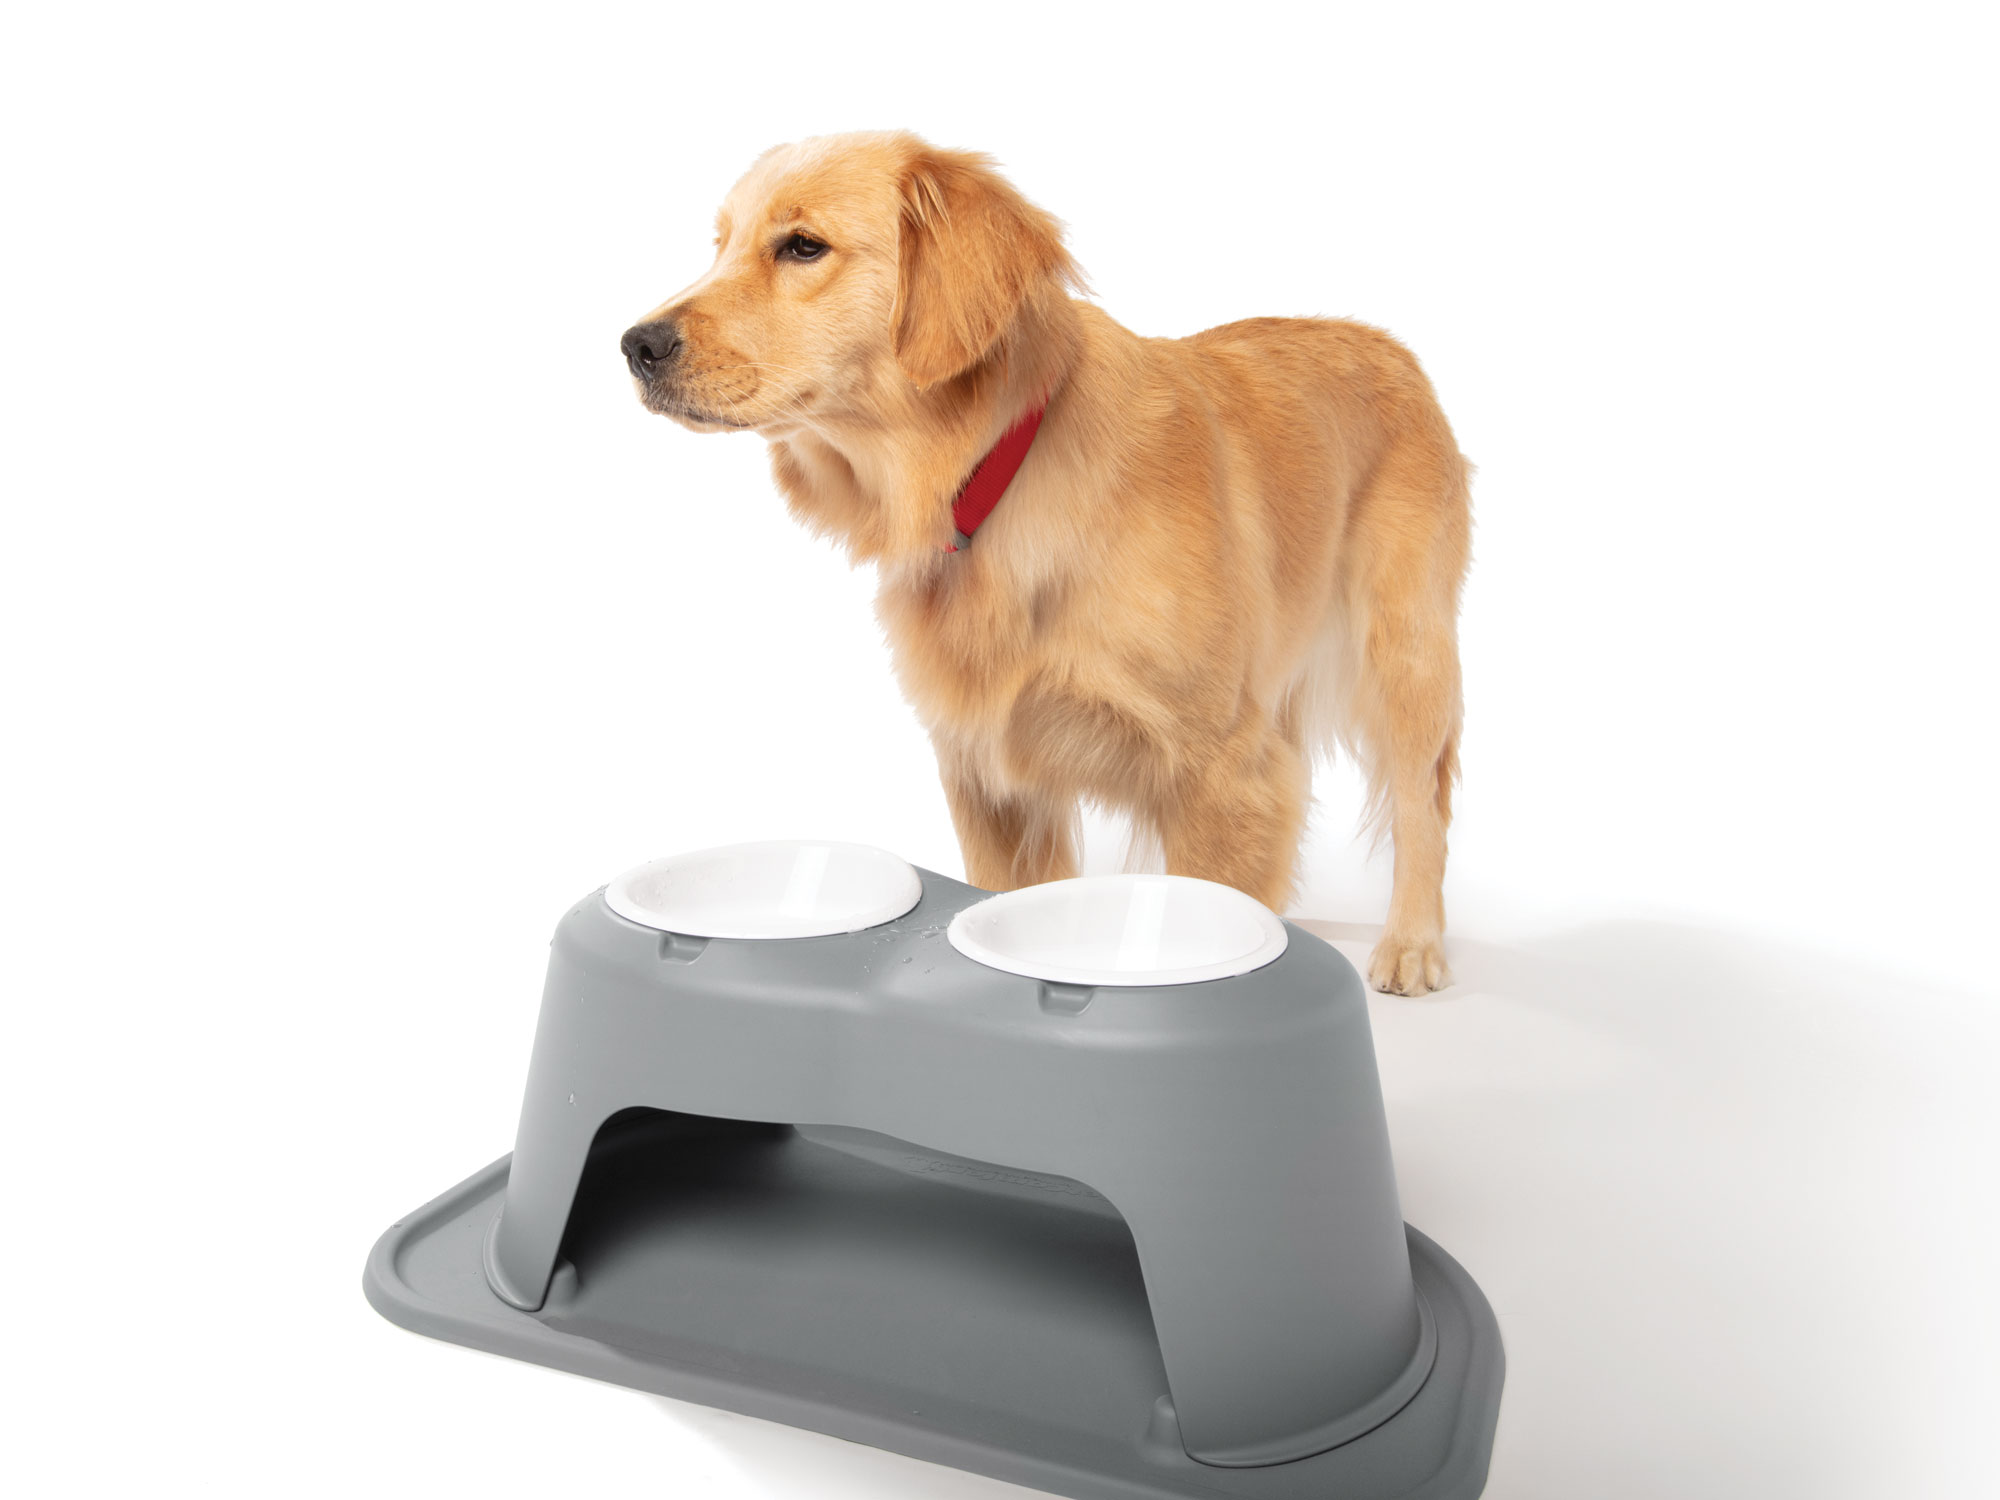 Double High Pet Feeding System in Gray with Golden Retriever taking a drink, leaving water on stand to prevent a mess underneath or to the sides